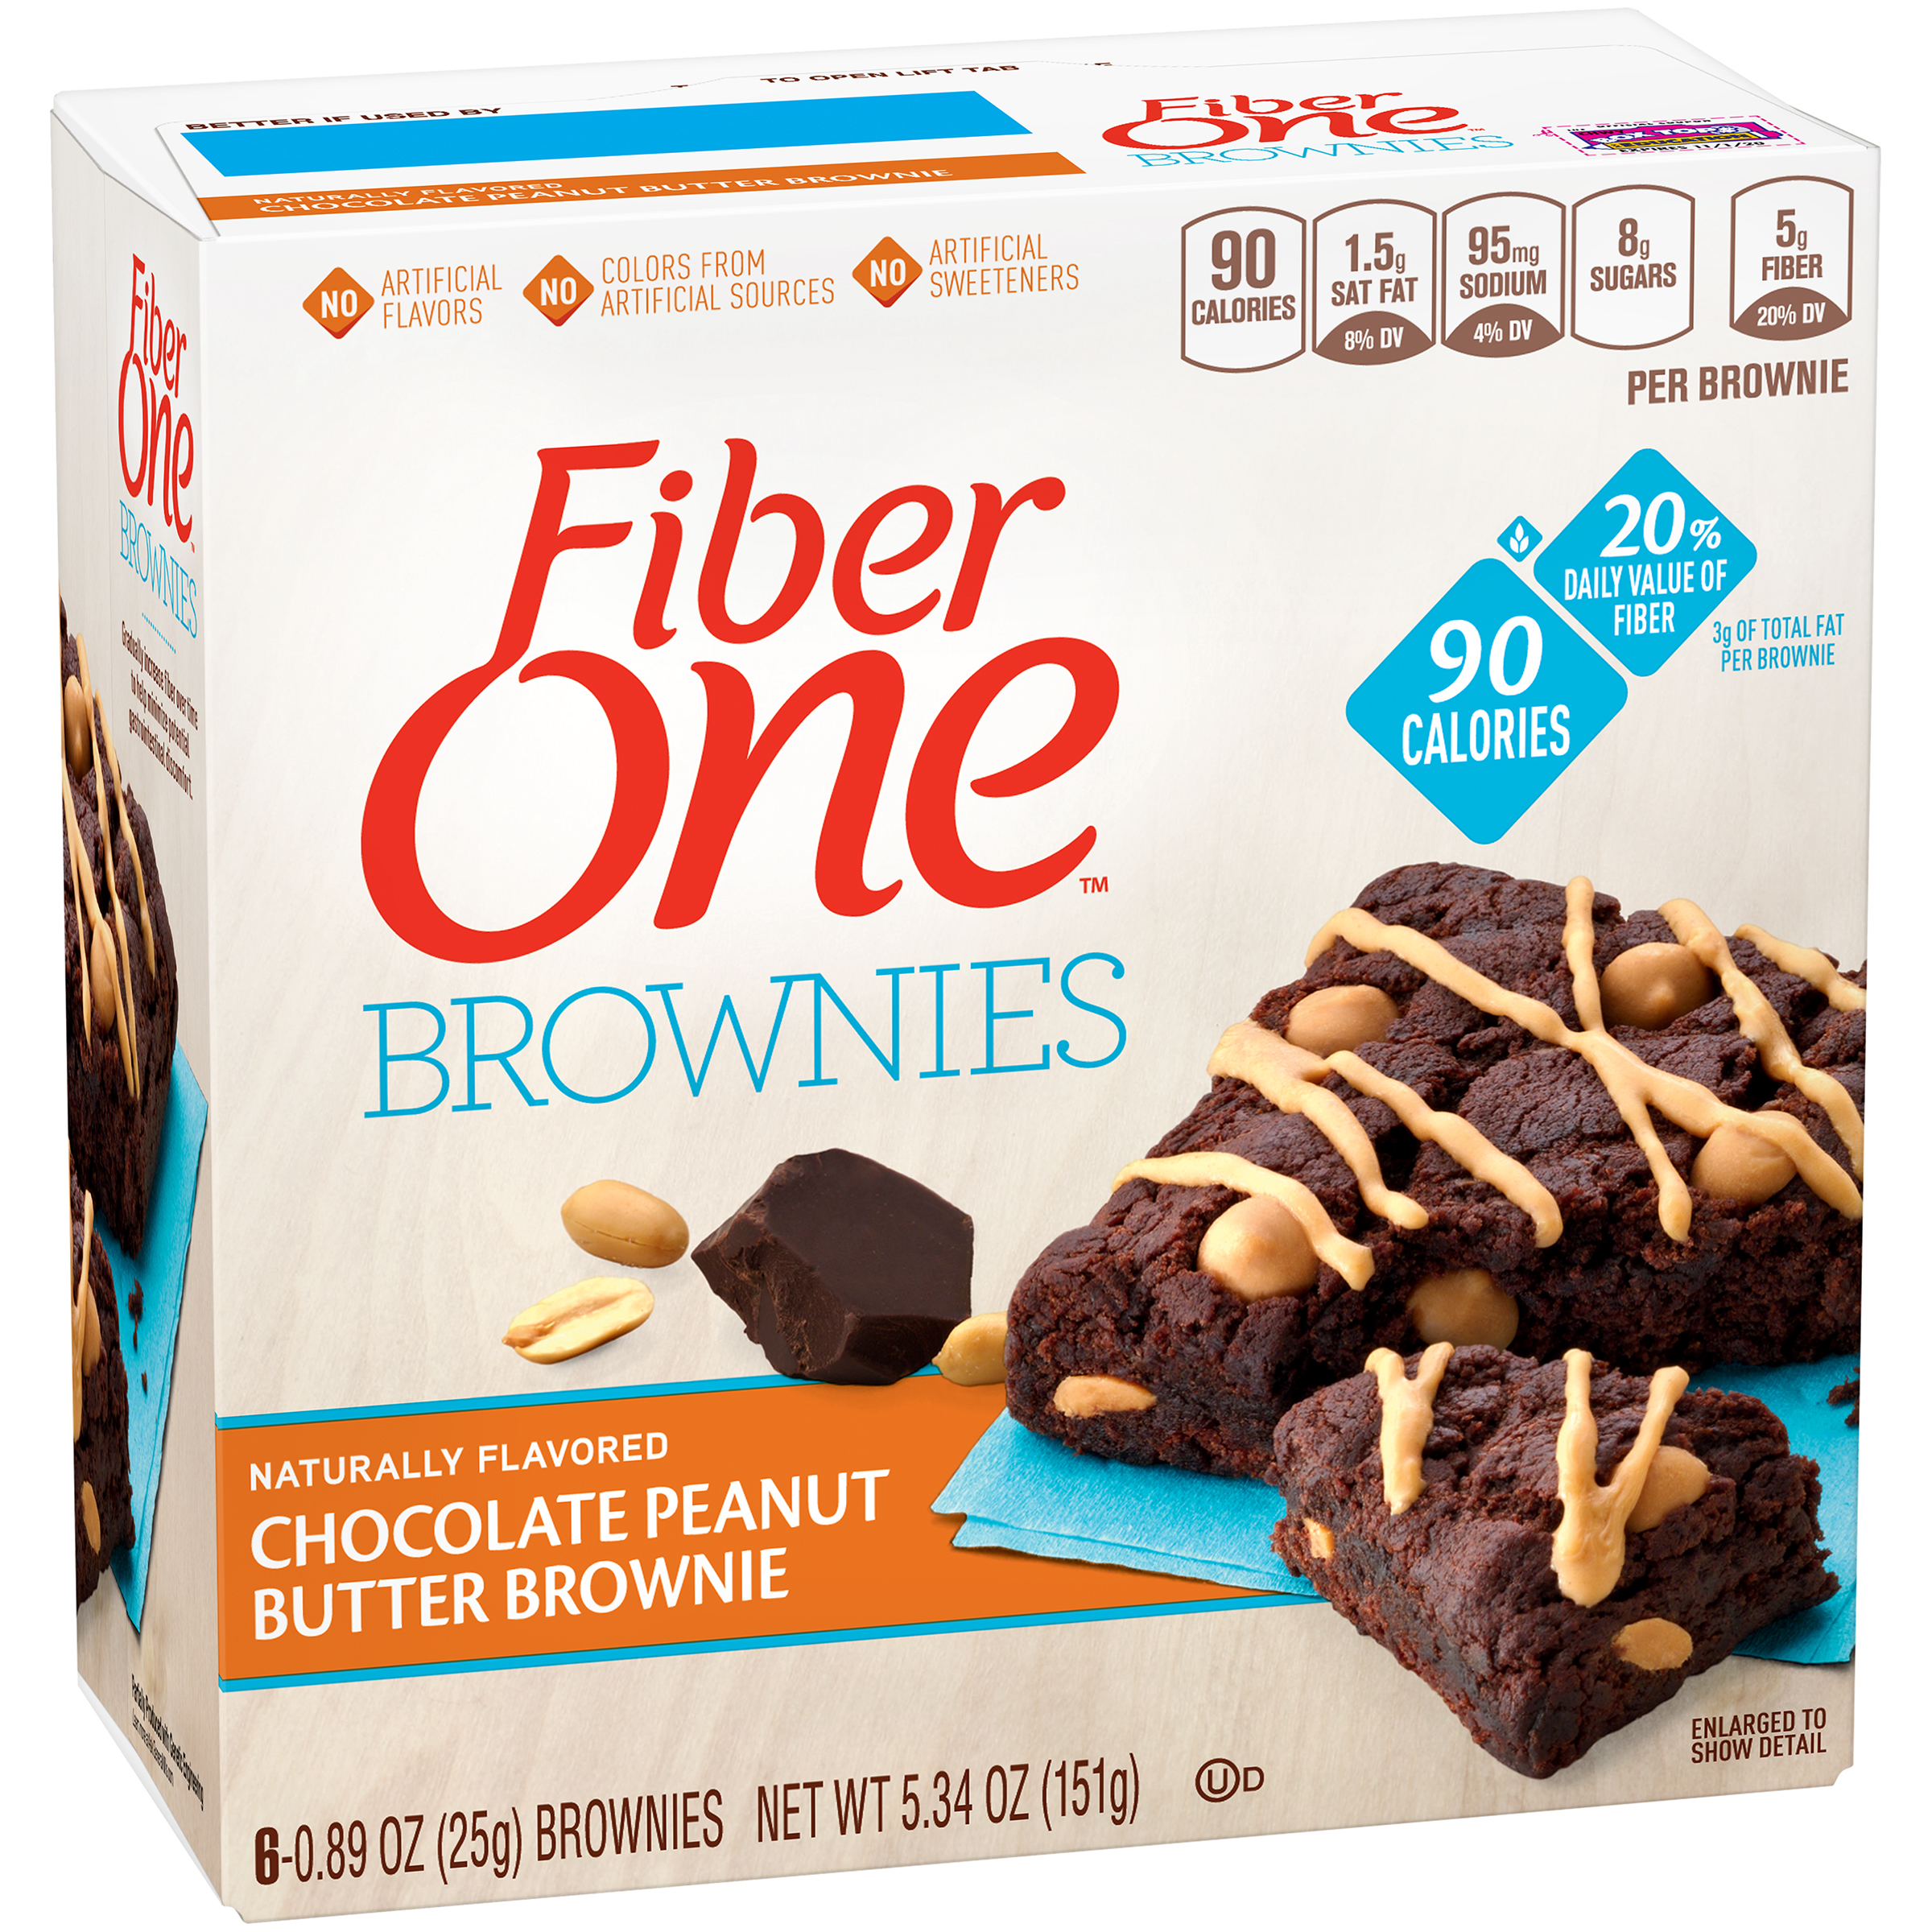 Fiber One��� 90 Calorie Chocolate Peanut Butter Brownies 6 ct Box